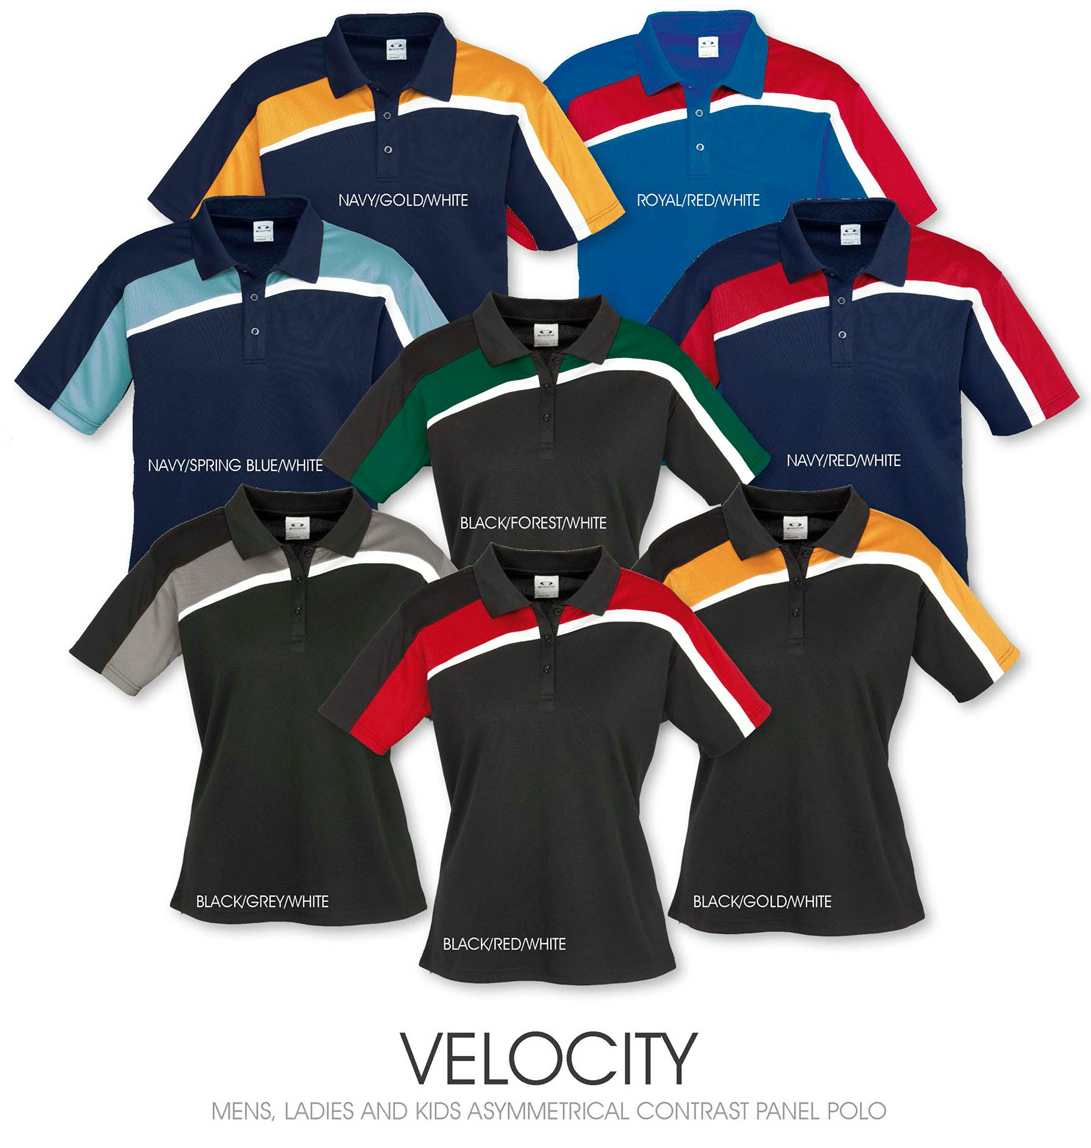 Velocity men's ladies and kids asymmetrical contrast panel polo.jpg